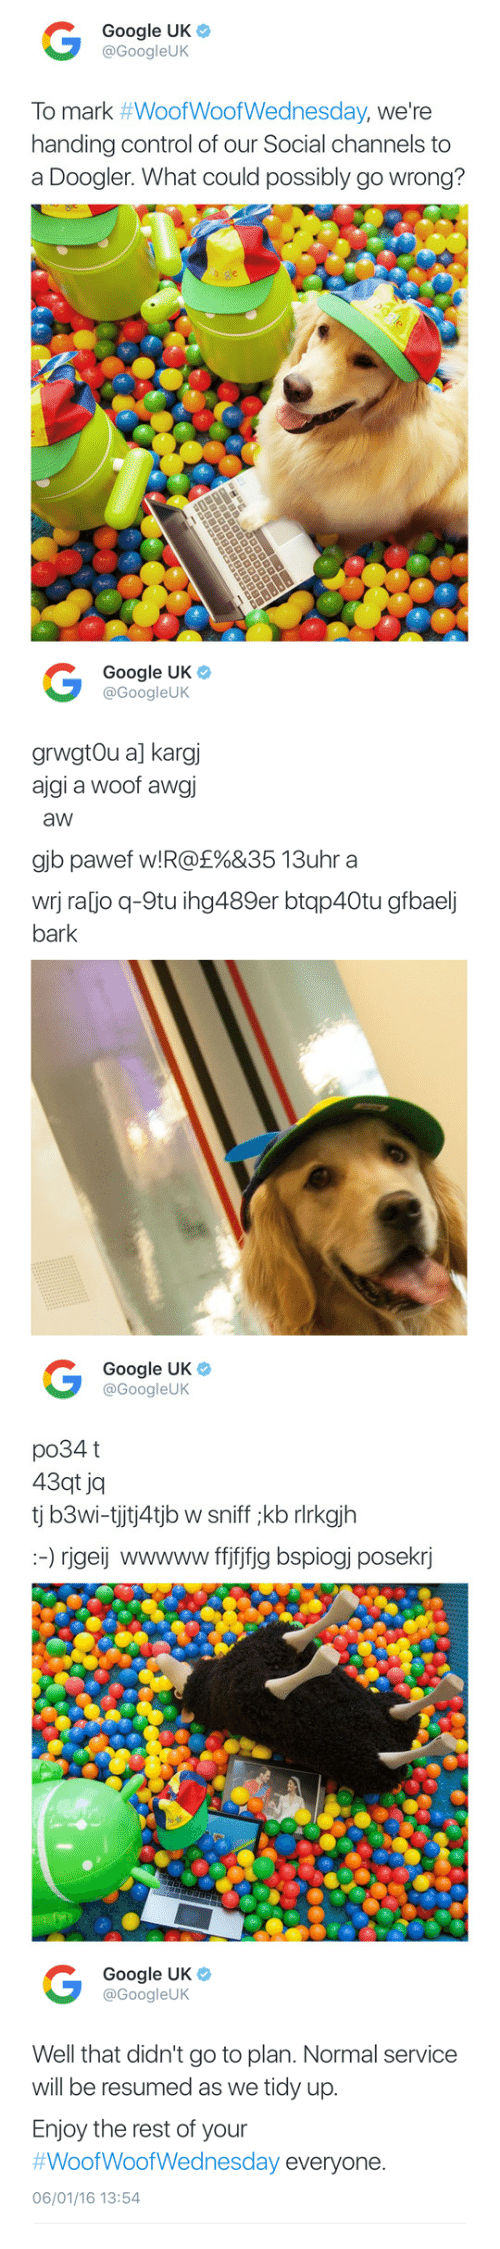 gib: Google UK  @GoogleUK  To mark #WoofWoofWednesday, we're  handing control of our Social channels to  a Doogler. What could possibly go wrong?   Google UK  @GoogleUK  grwgtOu a] kargj  ajgi a woof awgi  aw  gib pawet w! R@£%&35 13uhr a  wrj ra[jo q-9tu ihg489er btqp40tu gfbaelj  bark   Google UK  @GoogleUK  po34 t  43qt jq  tj b3wi-tjtj4tjb w sniff ;kb rlrkgjh  :-) rjgeij wwwww ffjfjfig bspiogj posekrj   Google UK  @GoogleUK  Well that didn't go to plan. Normal service  will be resumed as we tidy up.  Enjoy the rest of your  #WoofWoofWednesday everyone  06/01/16 13:54